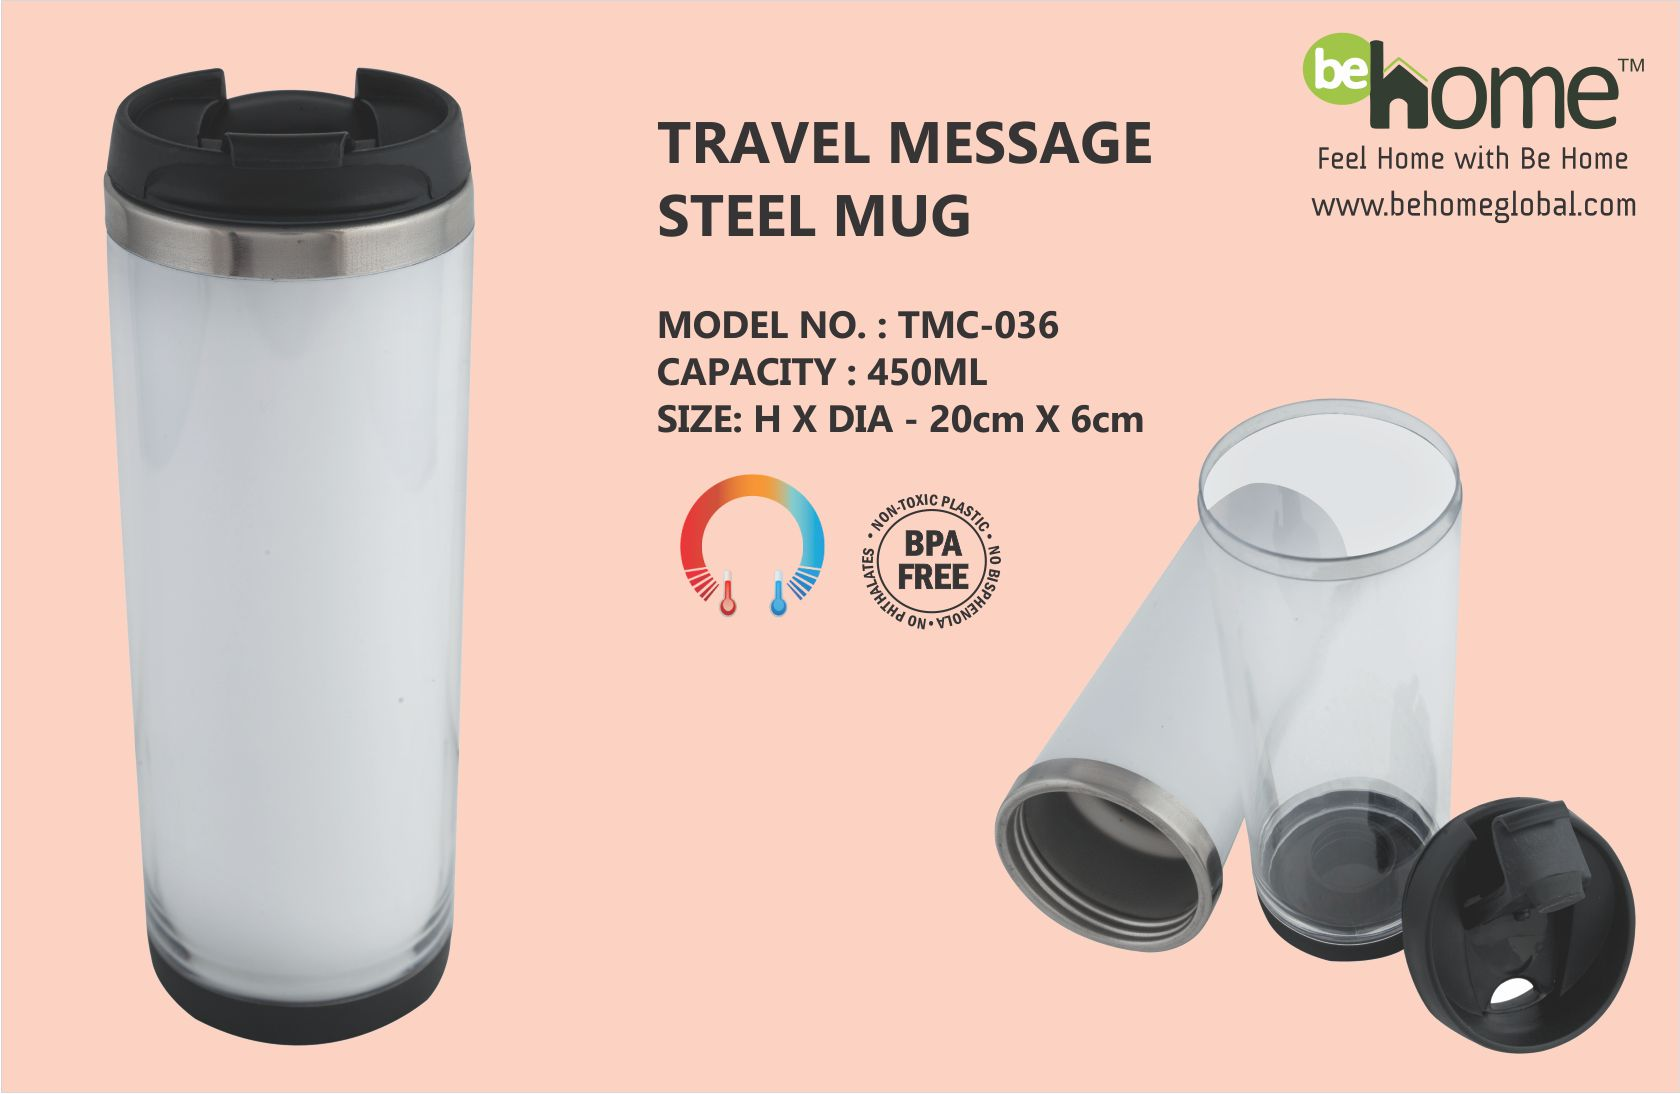 101 To 200 Behome Memo Water Bottle A5 750ml Premium Grade Bpa Free Portable Kettle Download Images